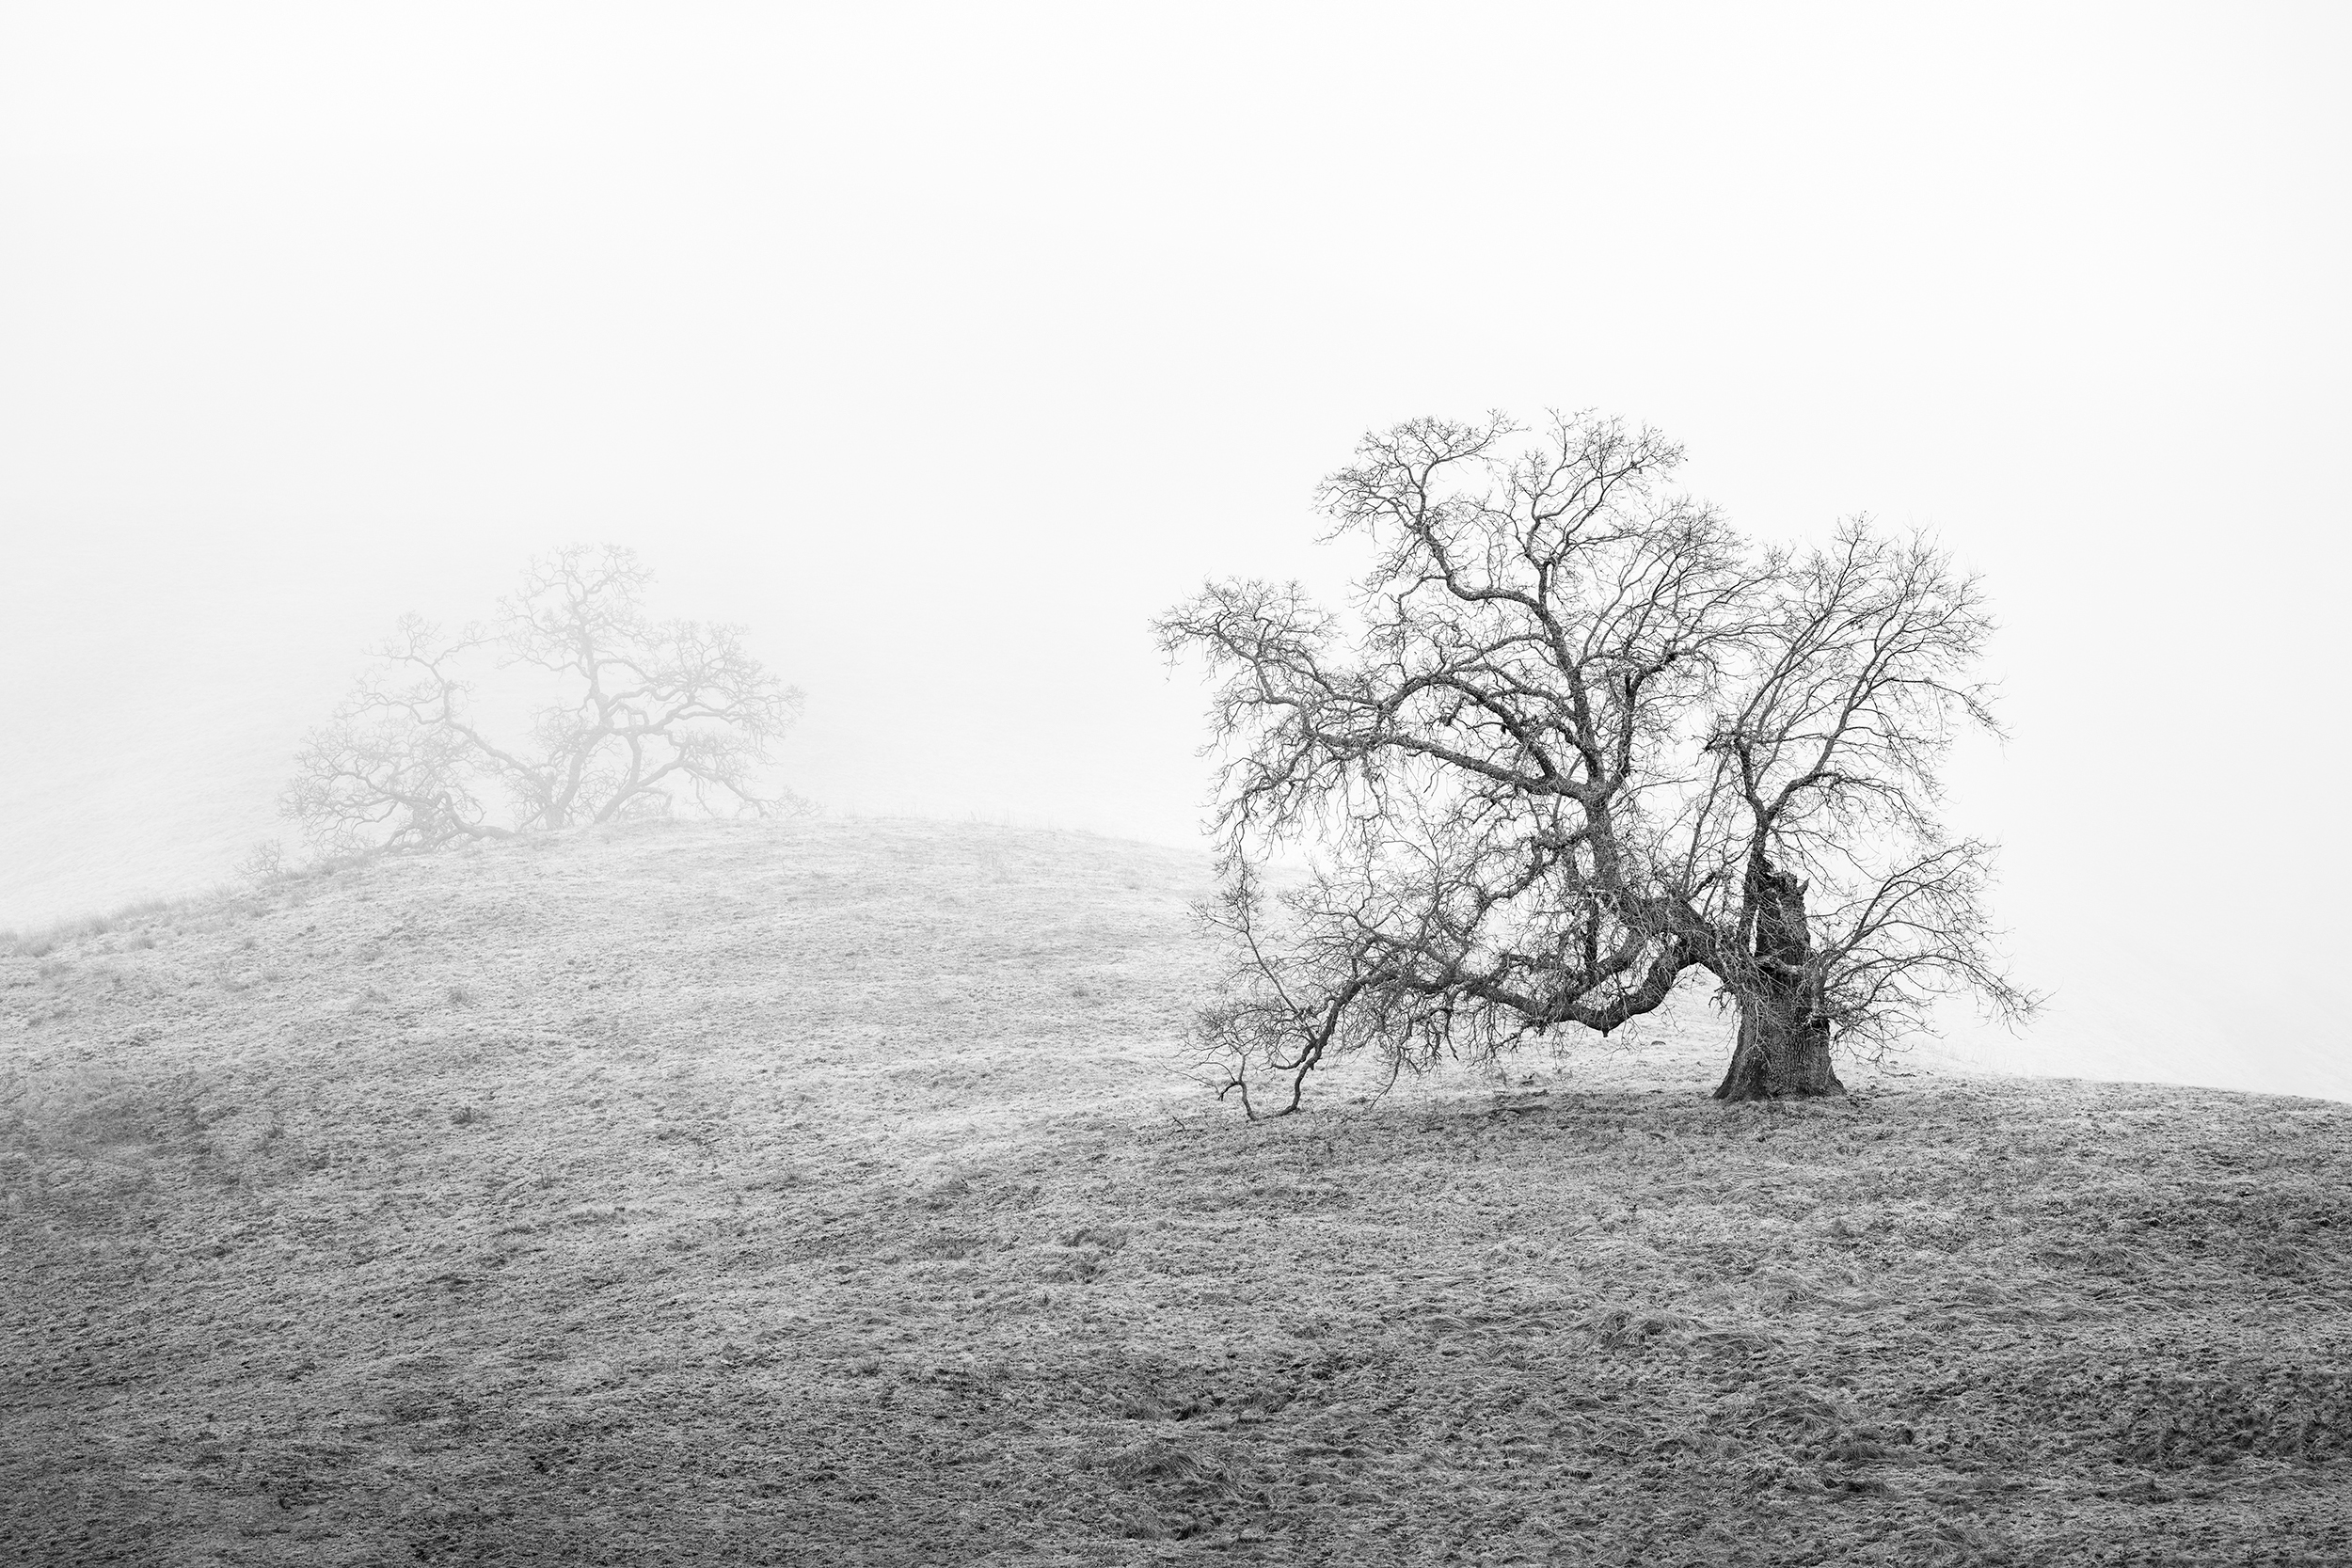 Oak Trees in Fog Study 4  - Joseph Grant Park (5230)